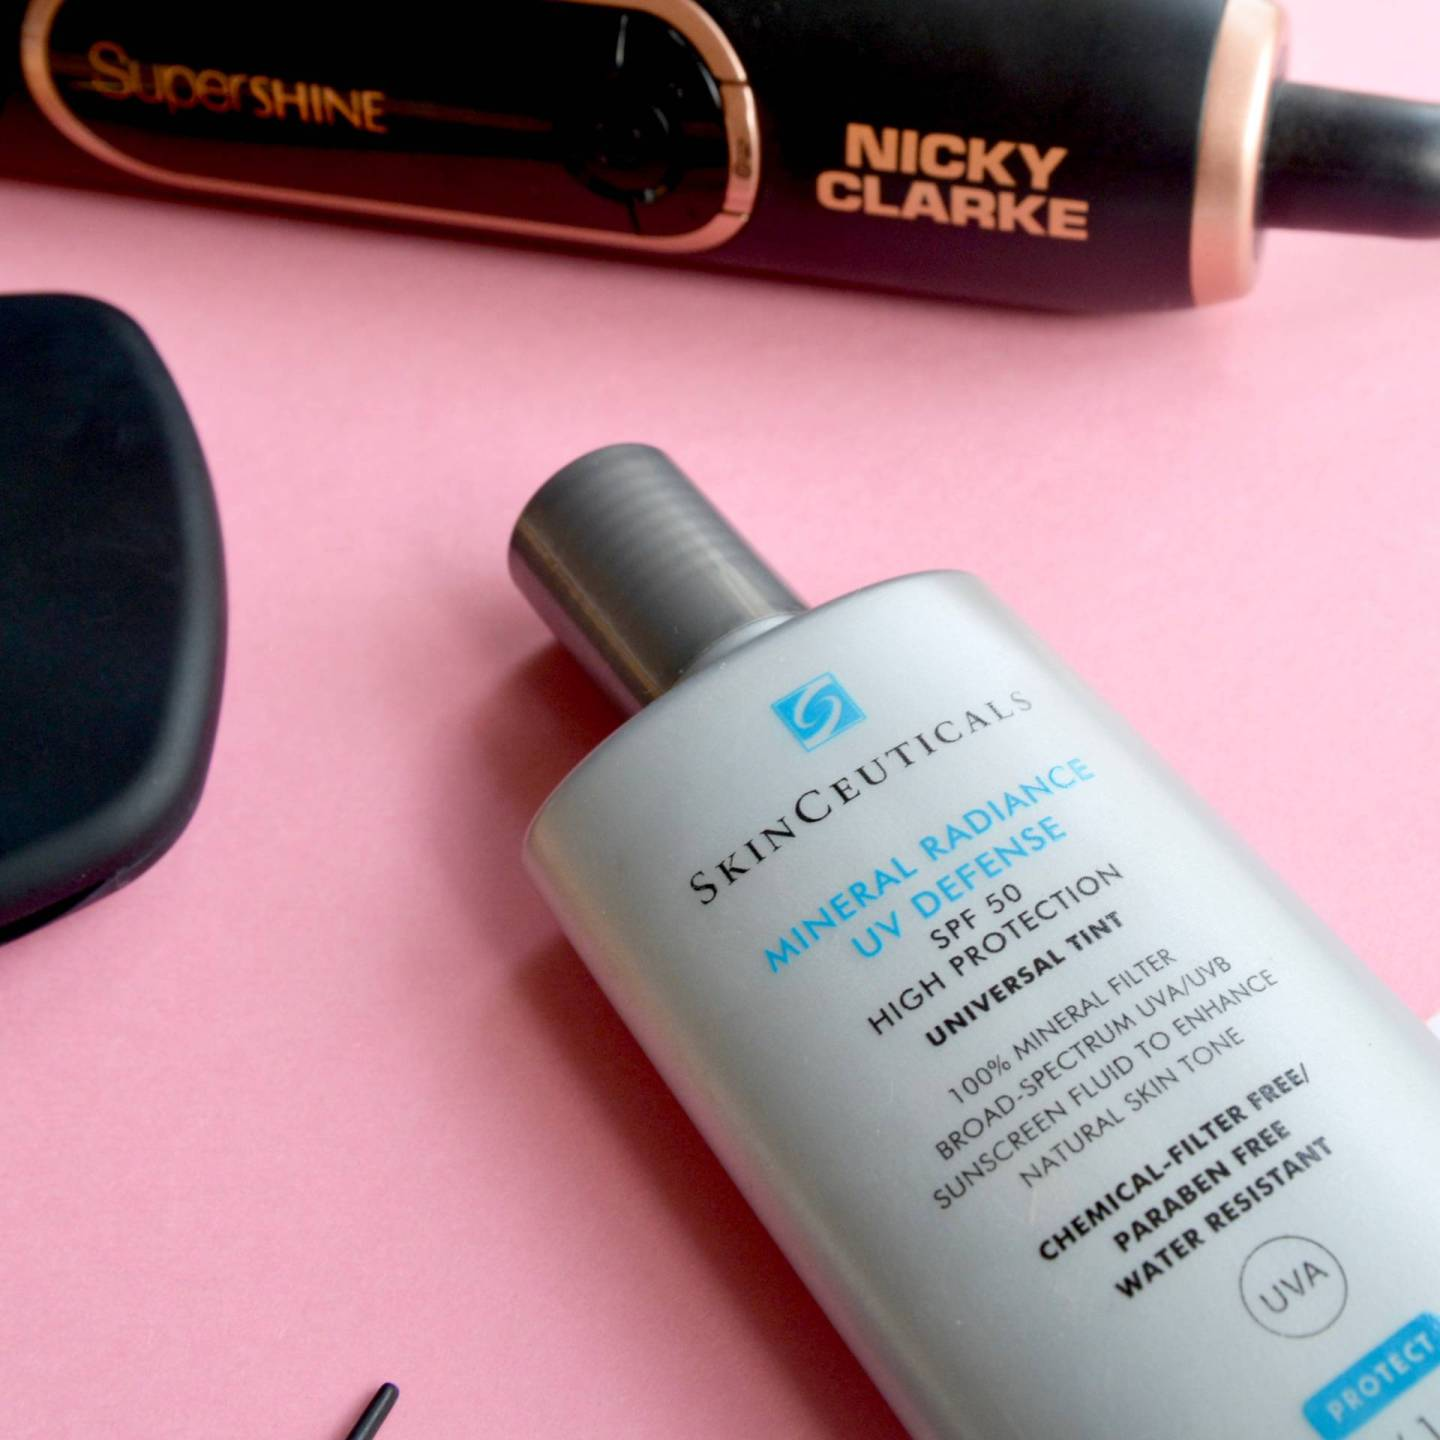 If you have sensitive skin or rosacea then this lightweight and tinted SPF from SkinCeuticals is the dream!